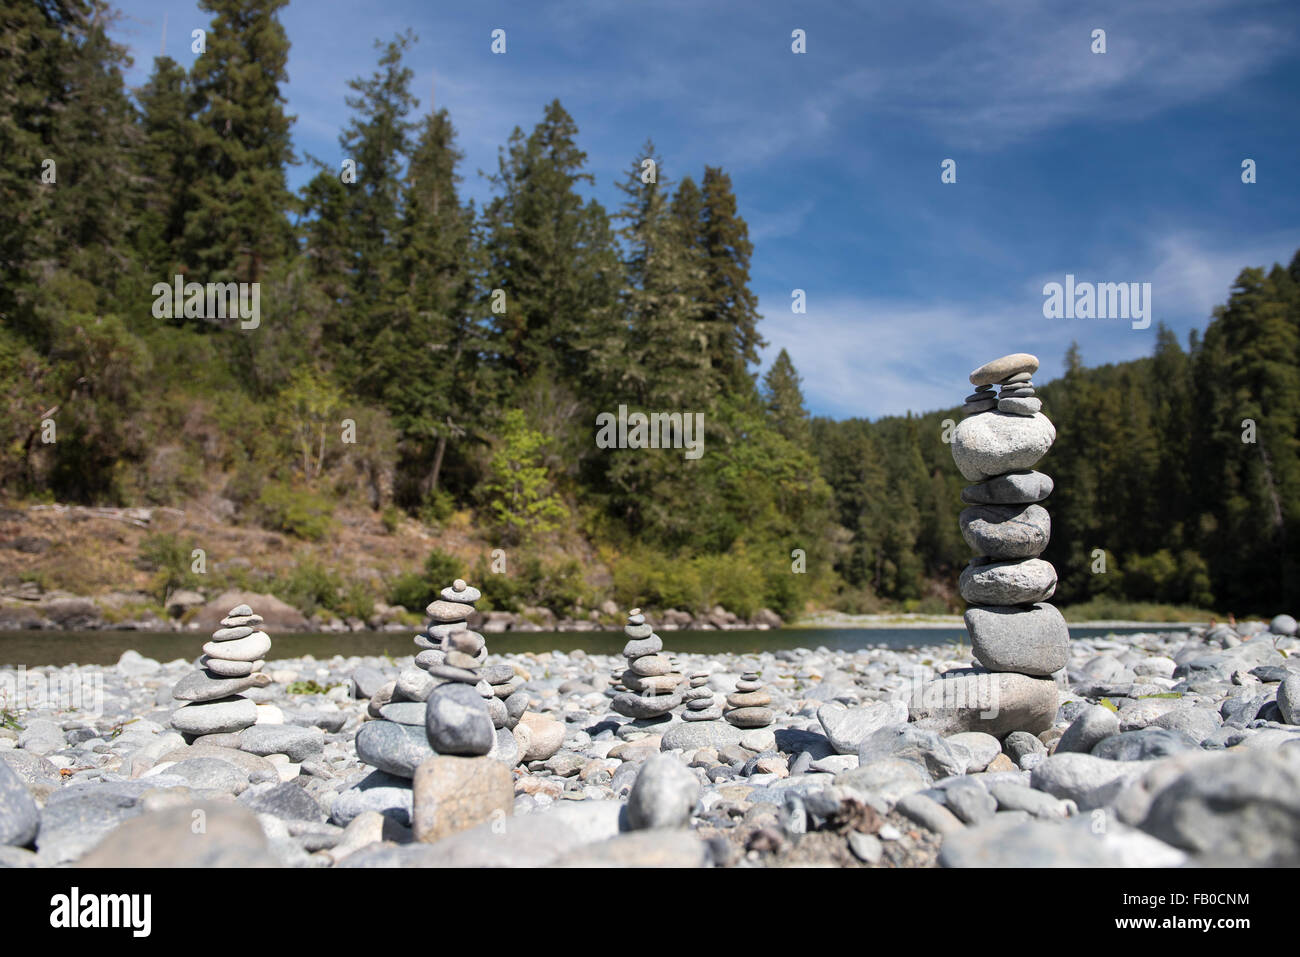 Rock cairns on the Smith River riverbed at Jebediah Smith Redwoods State Park in Northern California, USA. - Stock Image